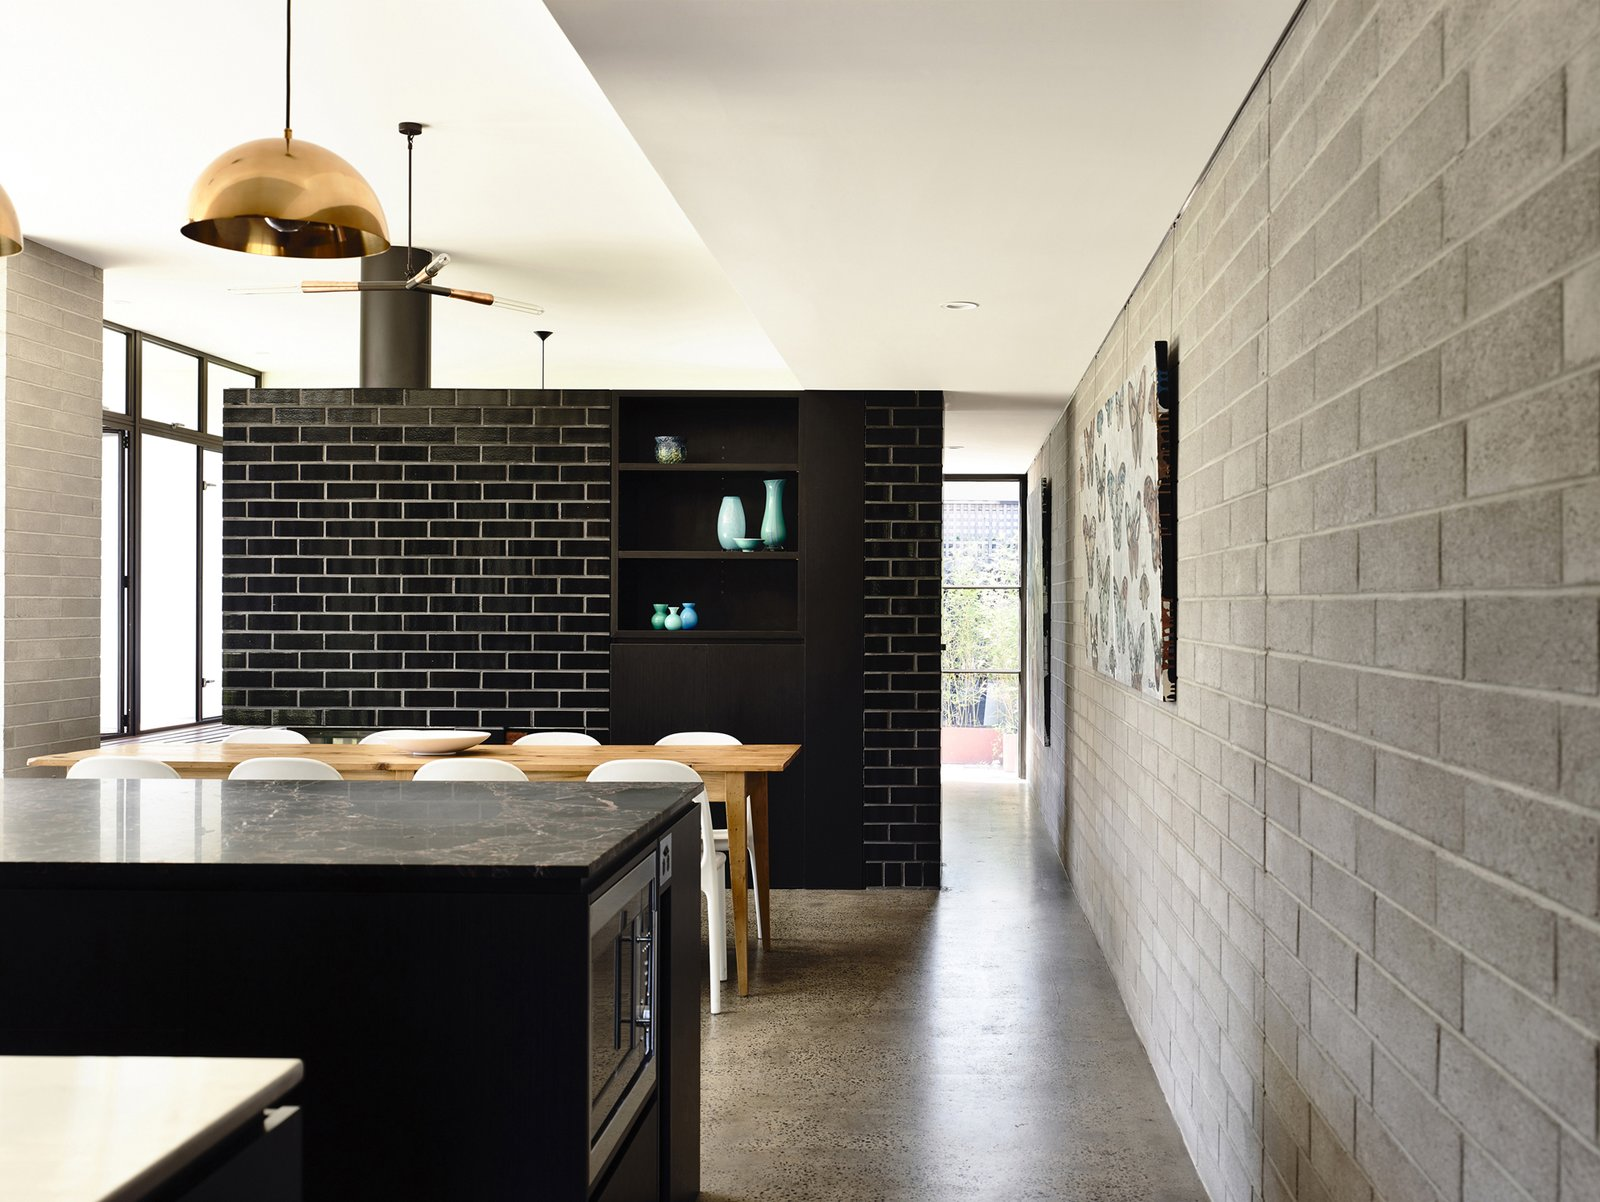 Dining Room, Chair, Table, Pendant Lighting, Concrete Floor, and Wood Burning Fireplace  Photo 6 of 10 in Old Meets New in This Modern Extension to an Edwardian House in Melbourne